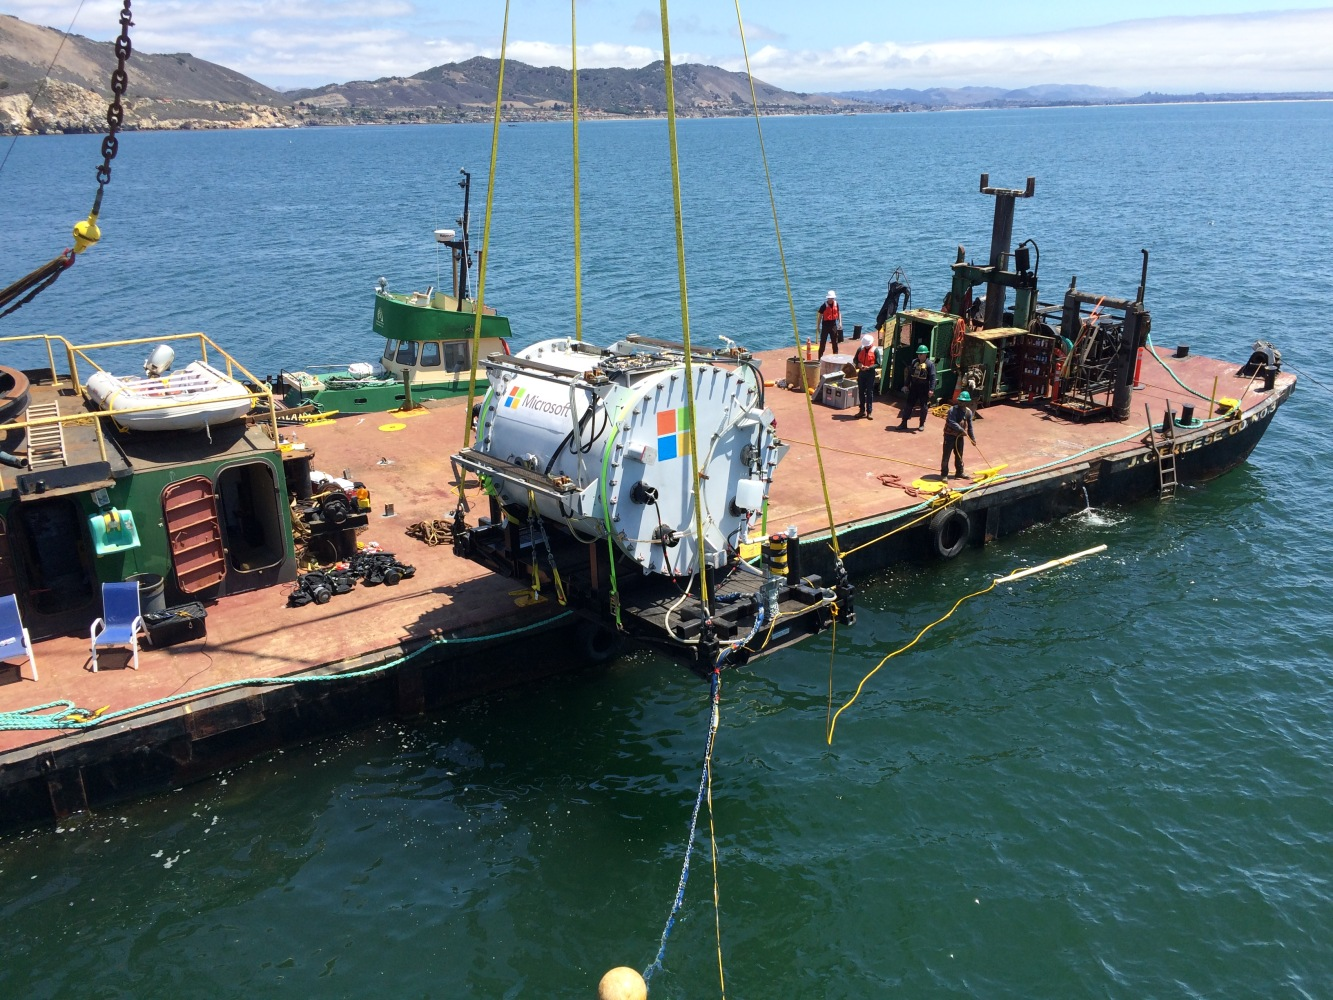 Microsoft's underwater datacenter: Project Natick tested successfully